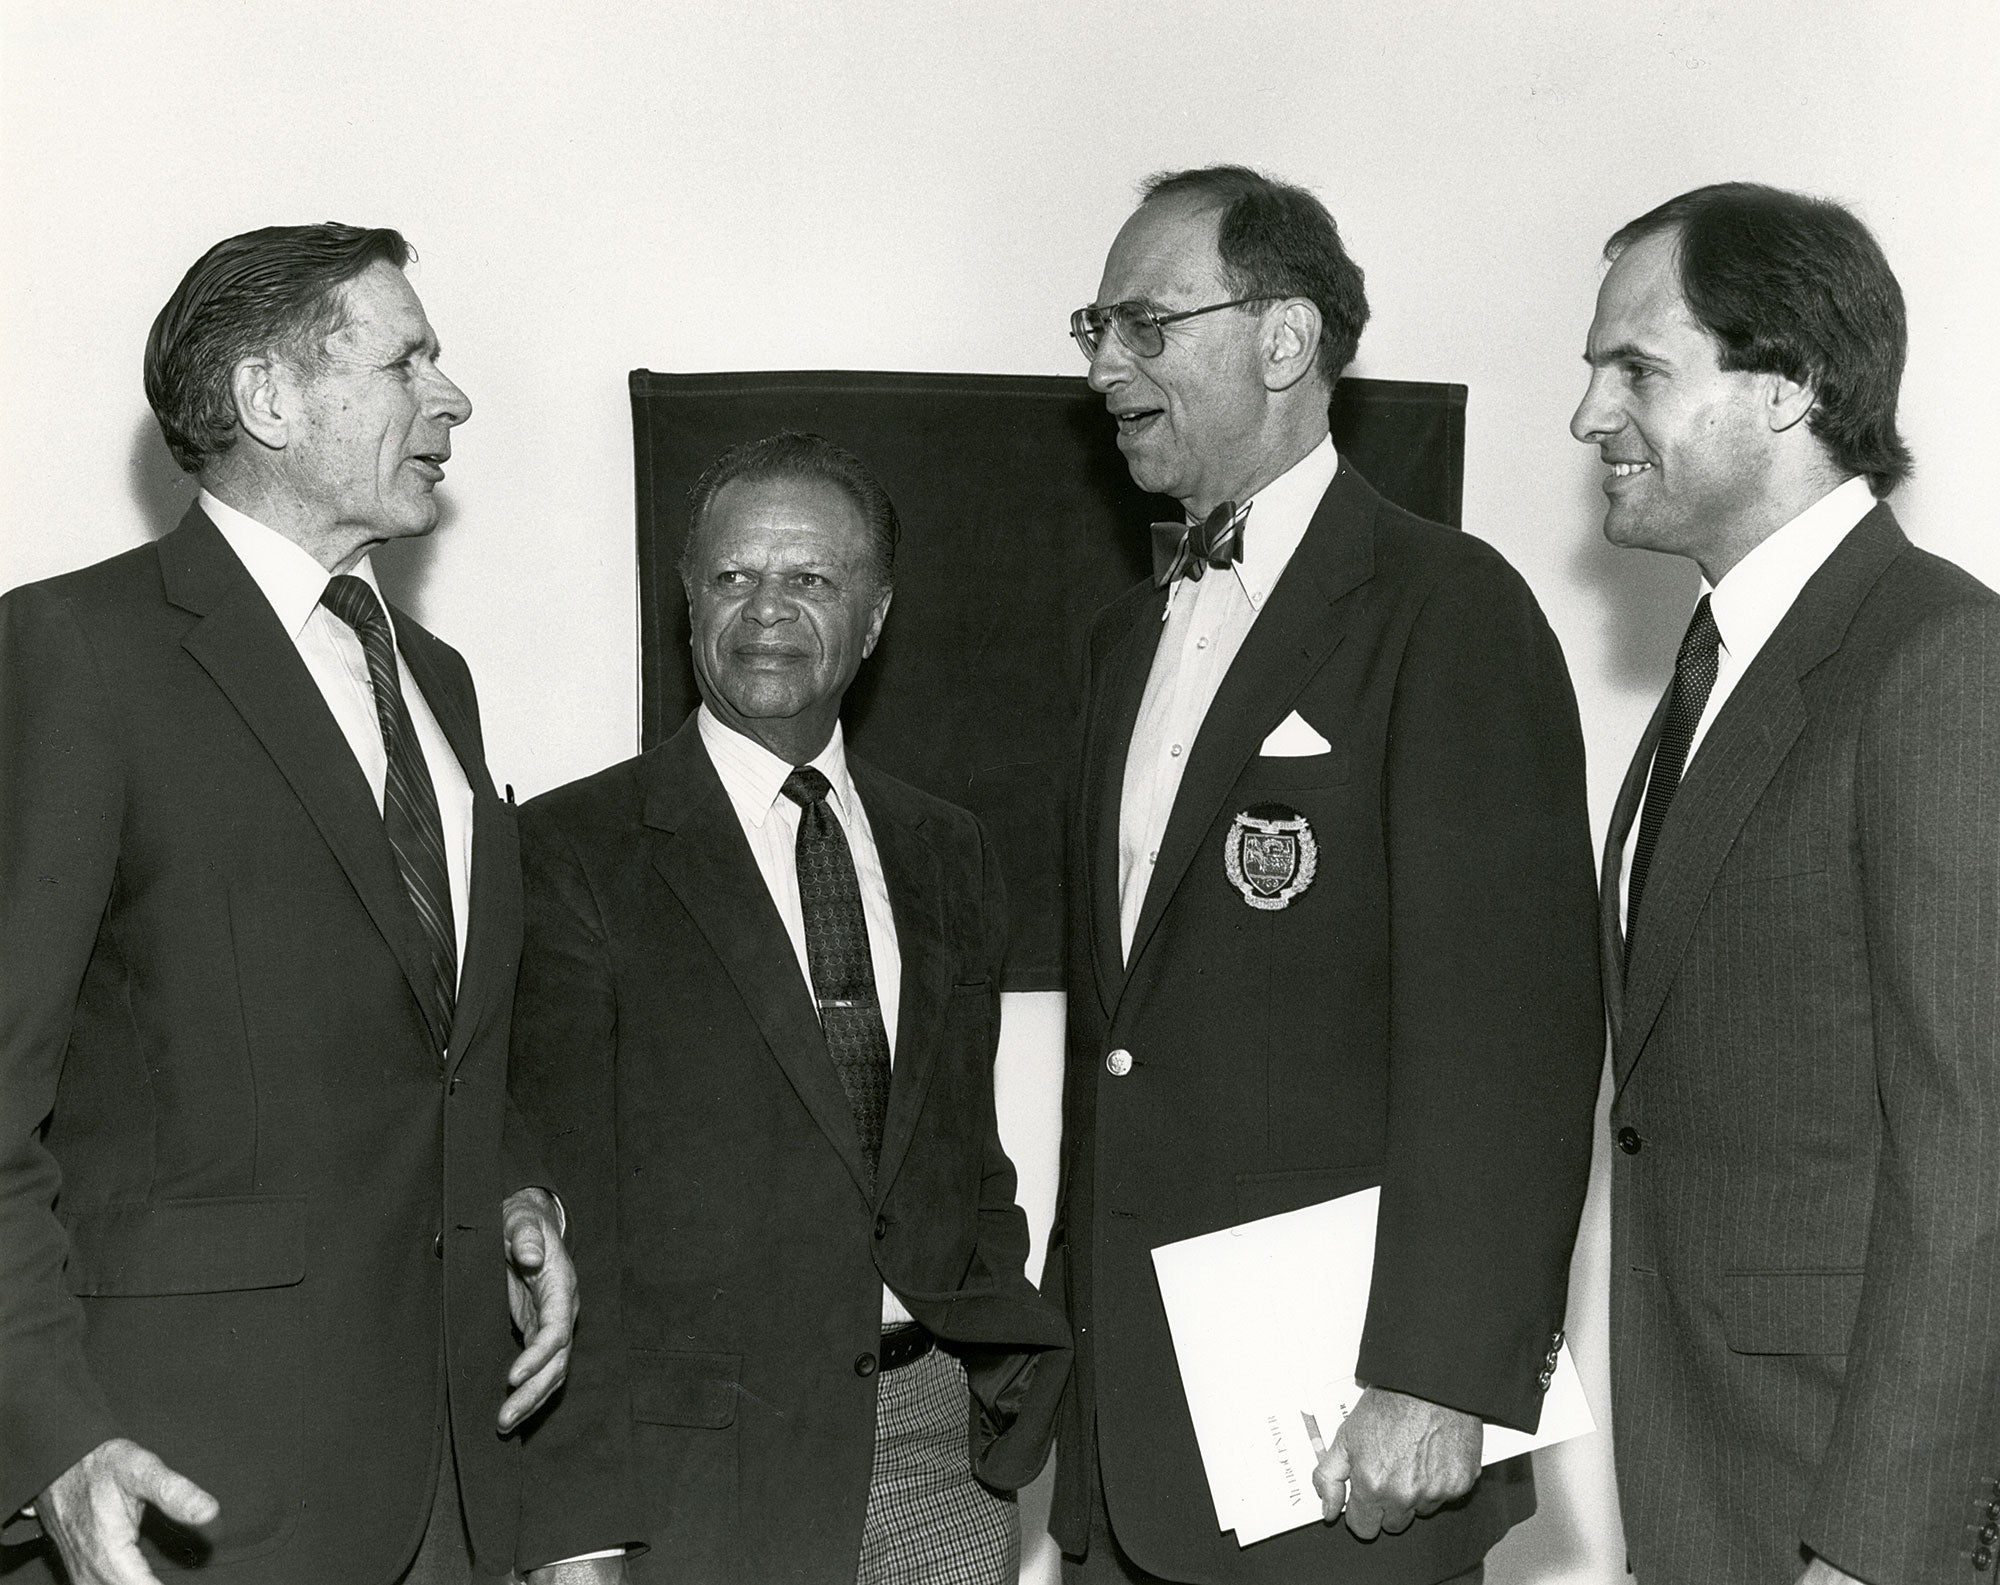 (Left to right) ABAG President and MTC Commissioner Joseph P. Bort, Oakland Mayor Lionel Wilson, MTC Chair Quentin Kopp, and BART Board President Arthur Shartsis converse at the MetroCenter's opening ceremony in April 1984.